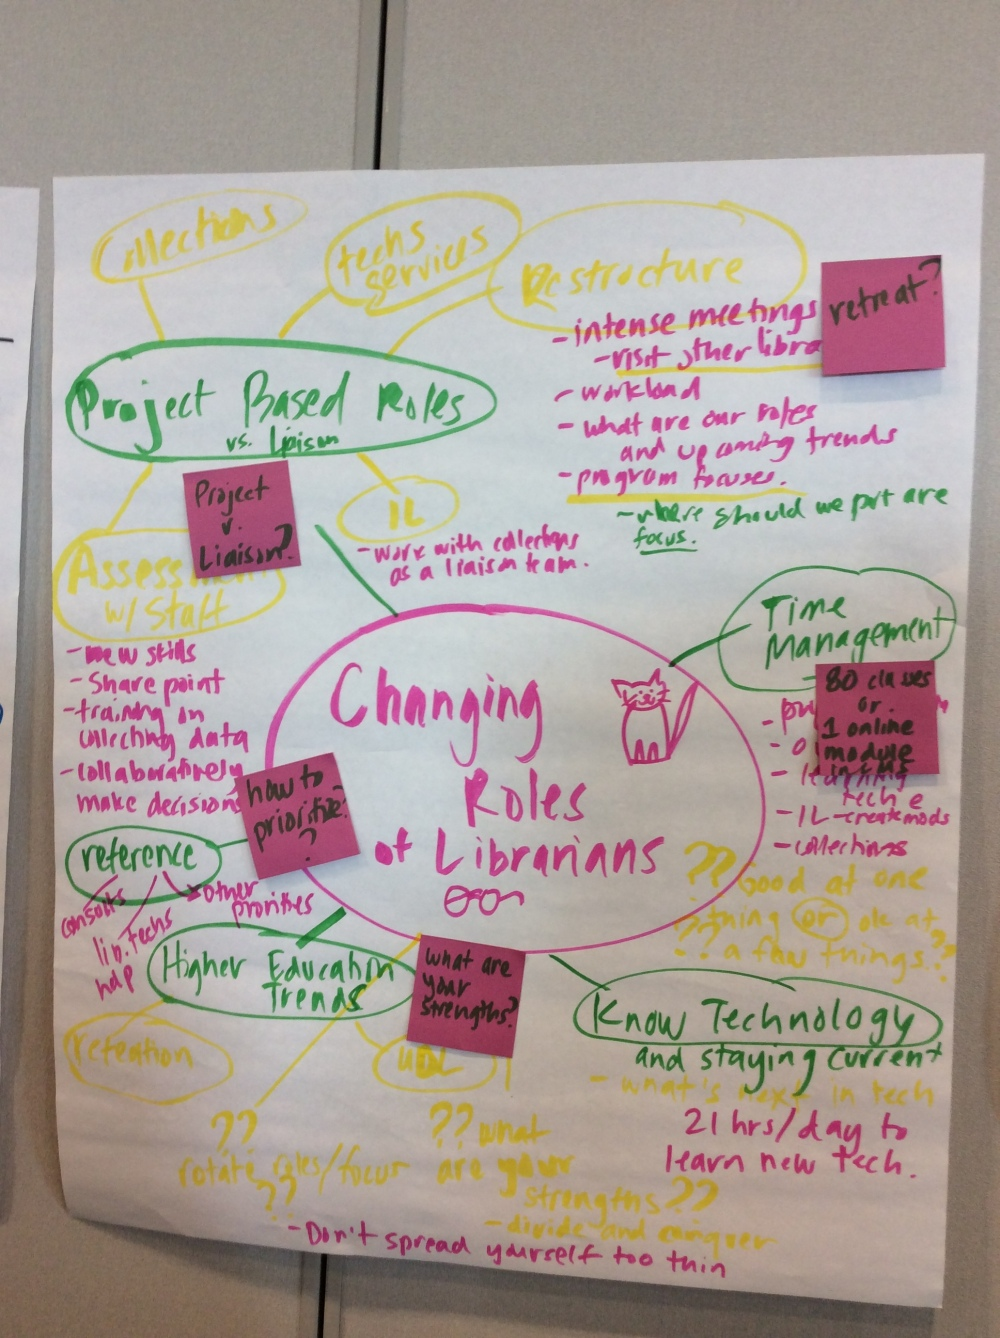 Changing Roles of Librarians discussion.